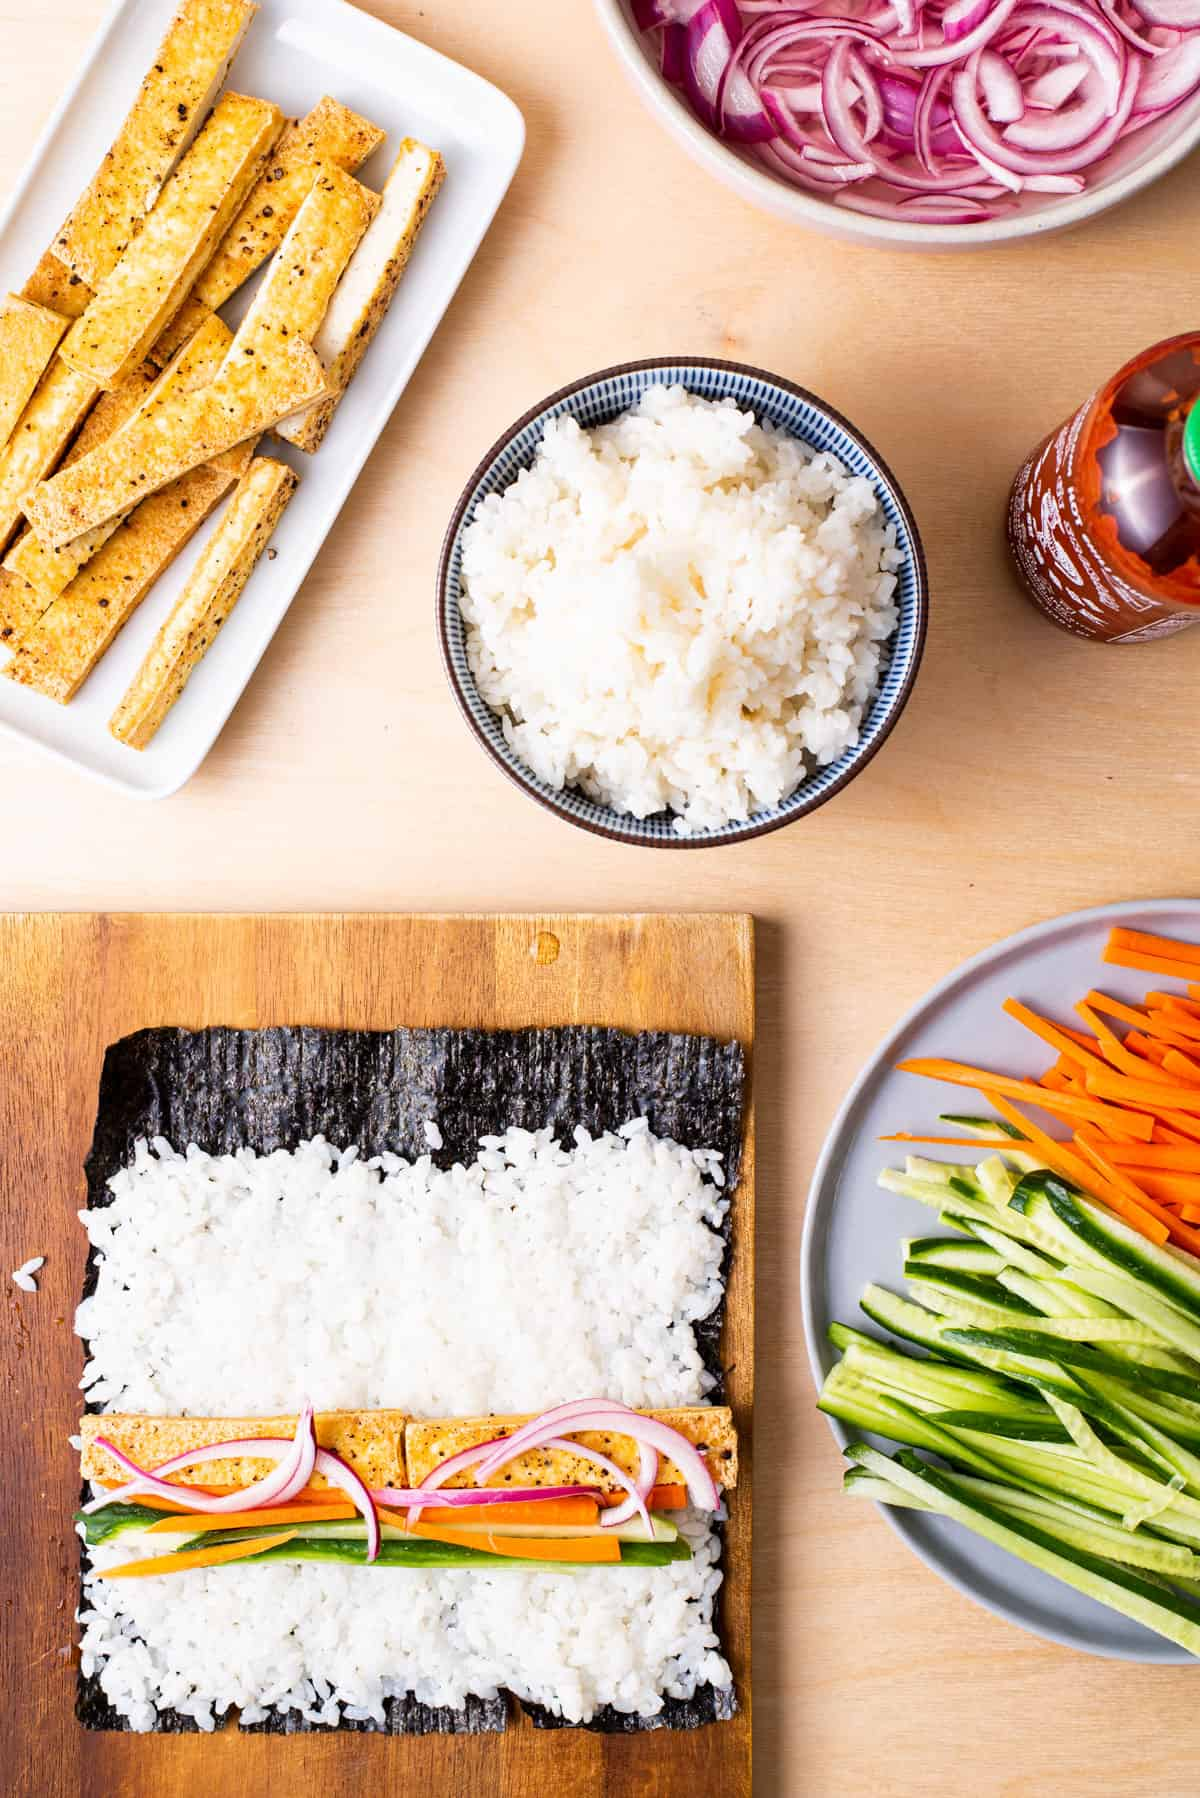 Making vegan sushi with tofu, raw veggies, and quick-pickled onions.